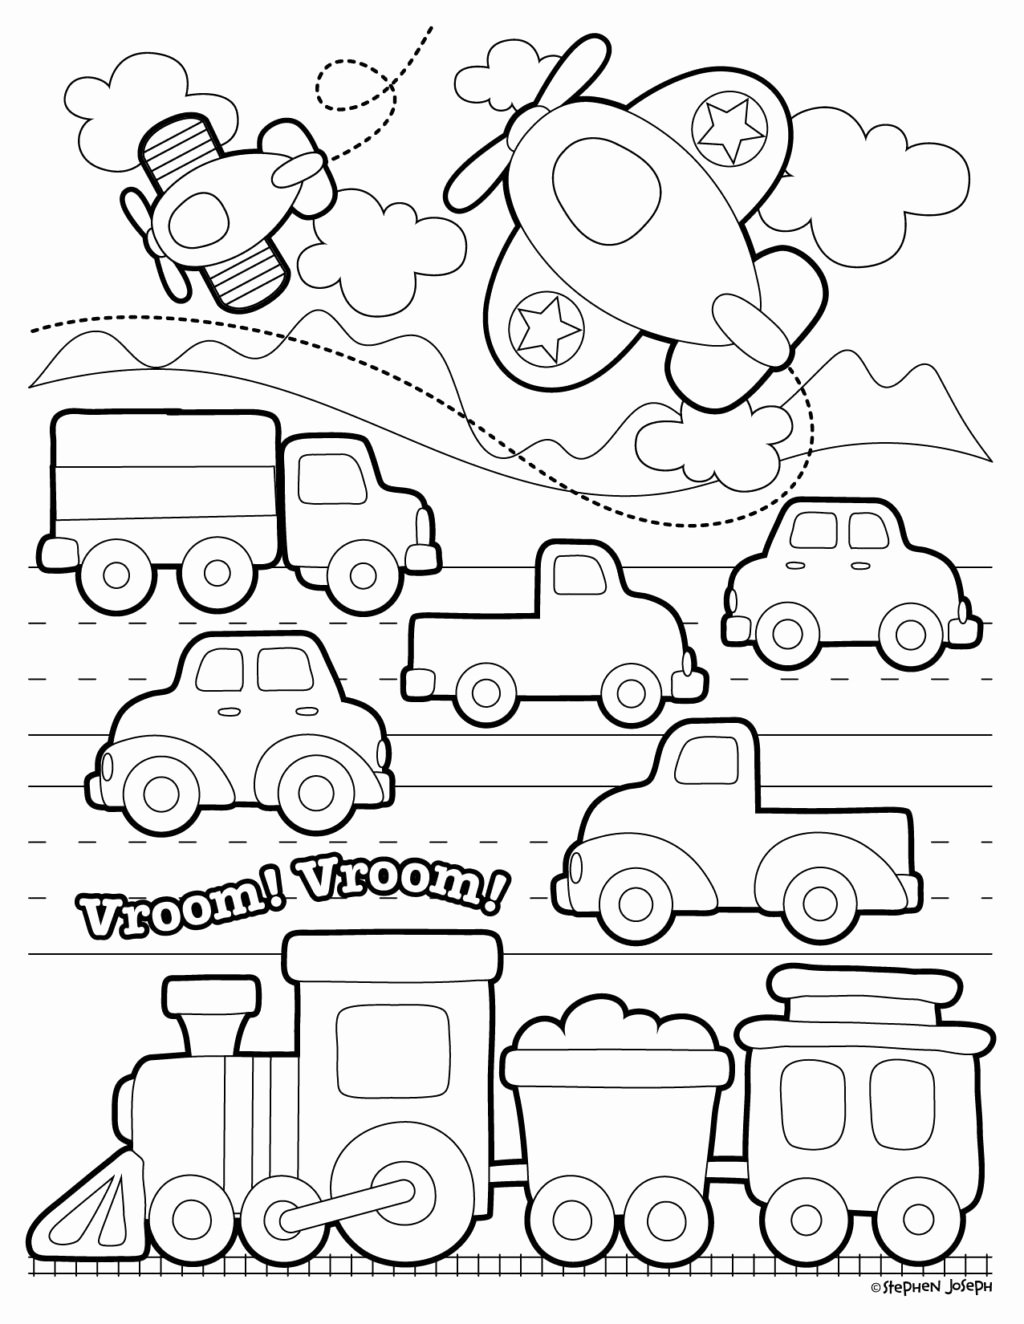 Worksheets for Preschoolers Transportation top Worksheet Worksheet Coloring Pages Transportation